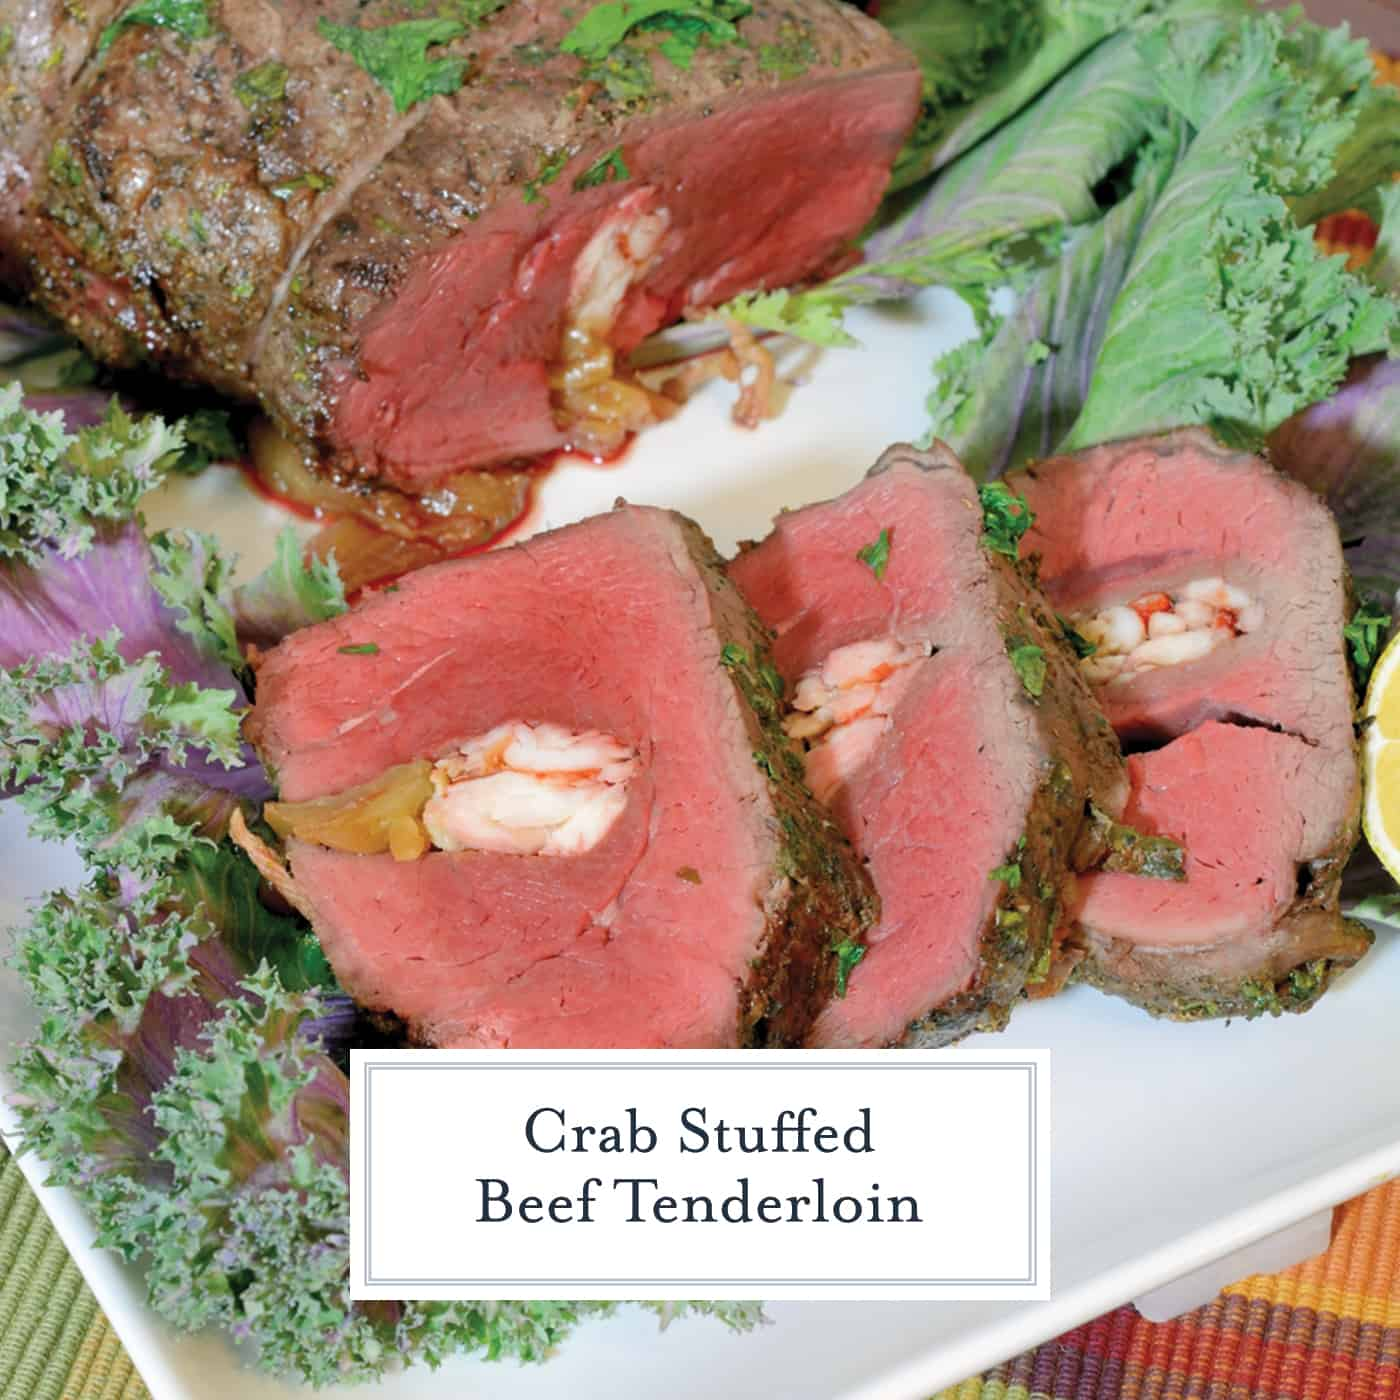 Crab Stuffed Beef Tenderloin takes a tenderloin and fills the center with buttered crab and caramelized onions, then baked to perfection with a black pepper bark.#beeftenderloinrecipe www.savoryexperiments.com